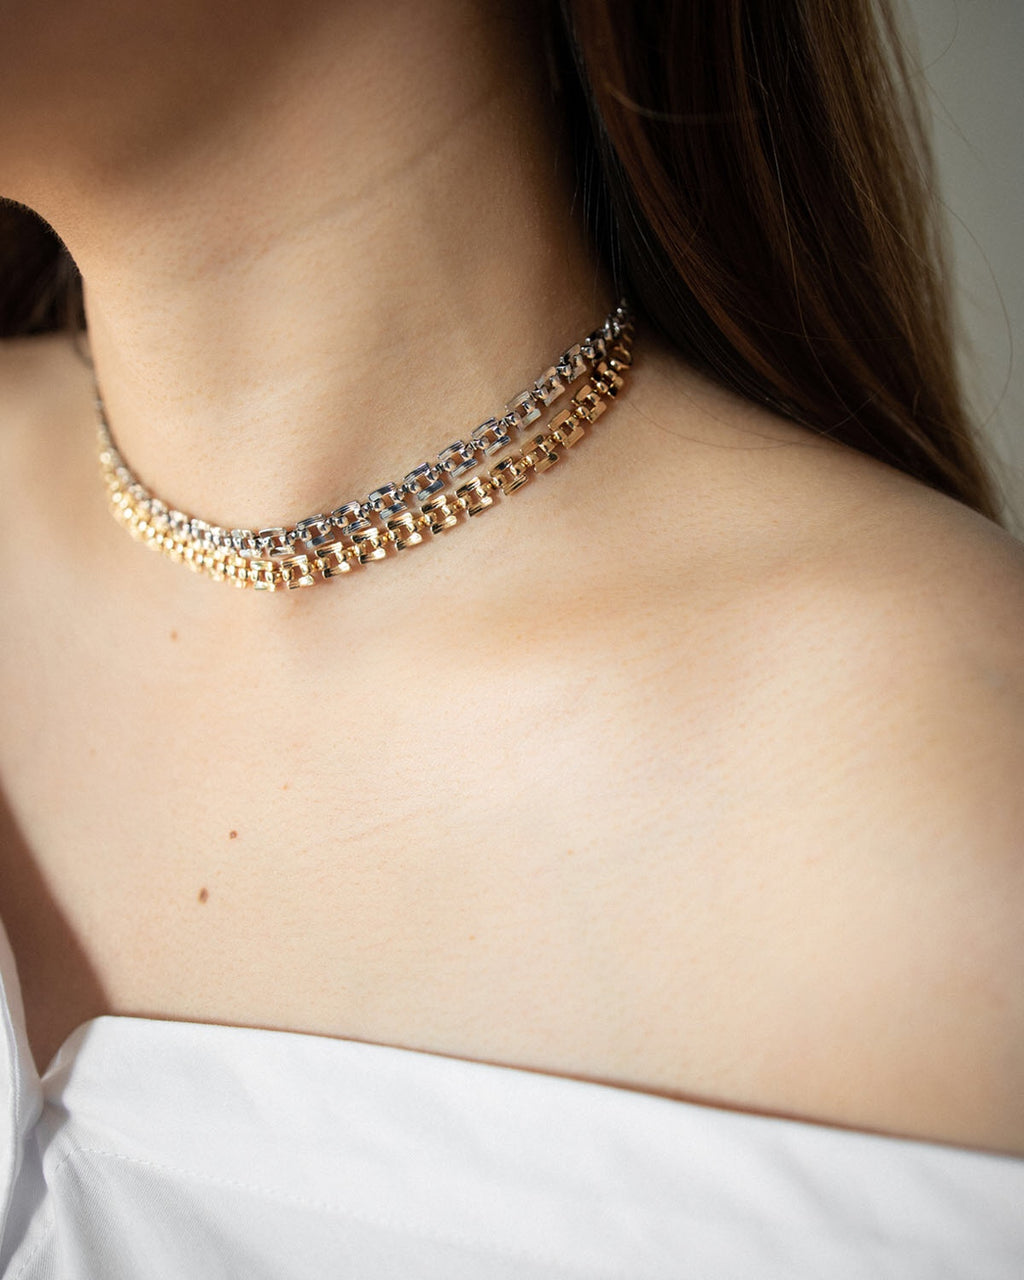 Chic choker necklace crafted in gold and silver metal - Shop the Tetris Chokers at thehexad